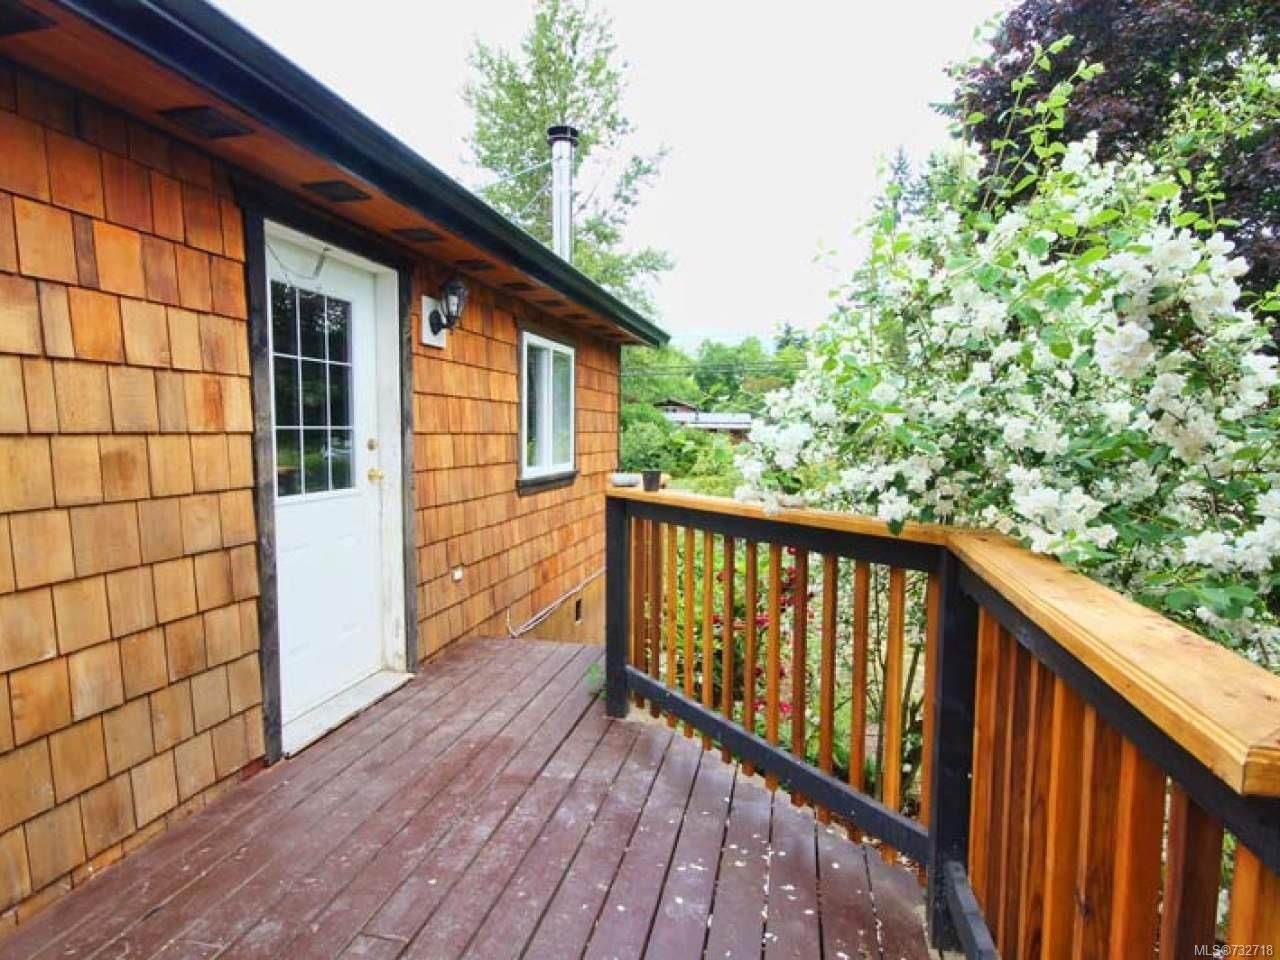 Photo 16: Photos: 921 POPLAR Way in ERRINGTON: PQ Errington/Coombs/Hilliers Manufactured Home for sale (Parksville/Qualicum)  : MLS®# 732718